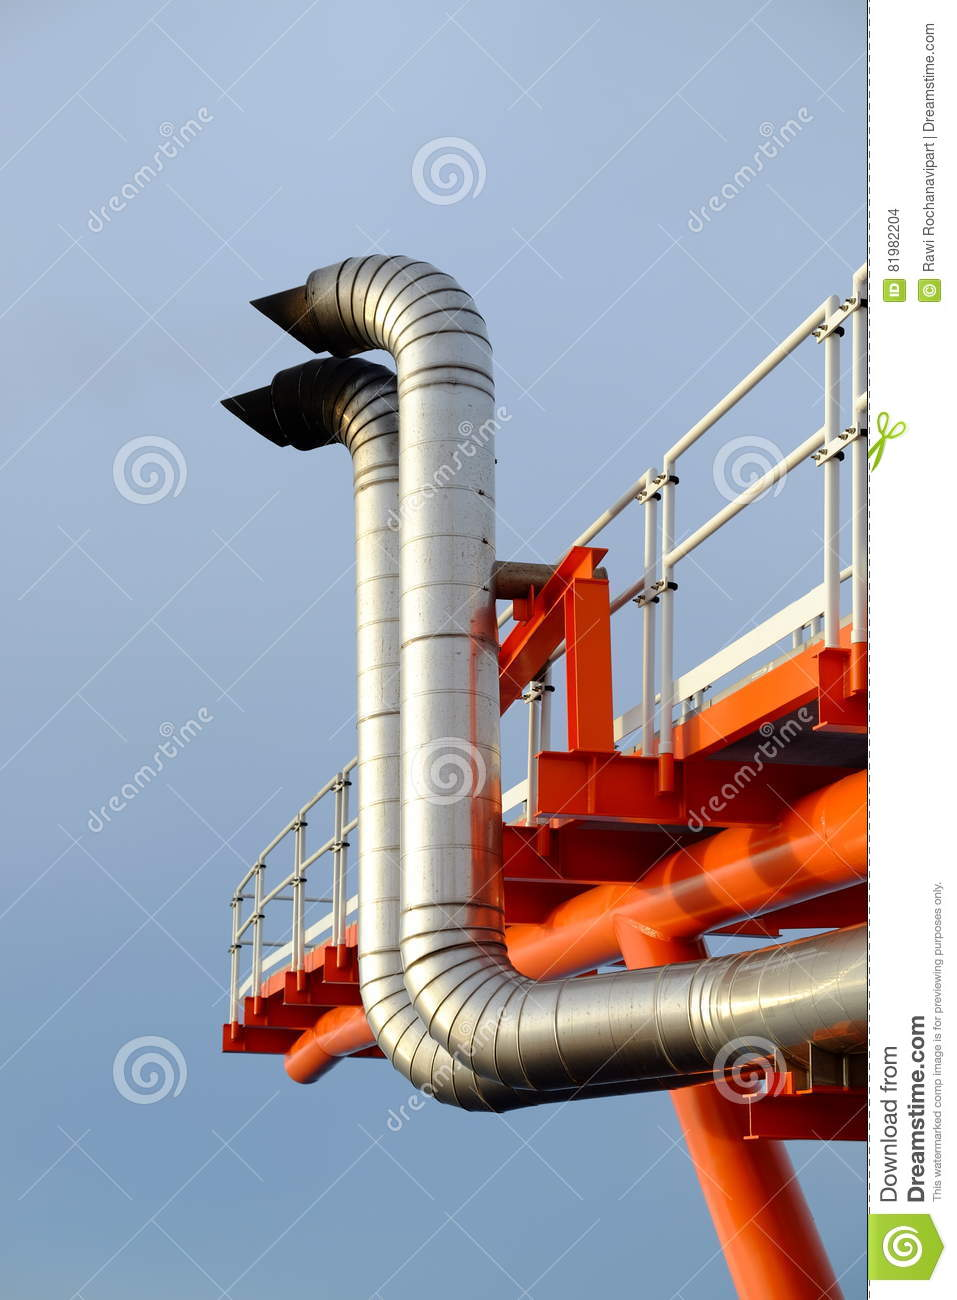 Exhaust of power engine  stock photo  Image of pipe